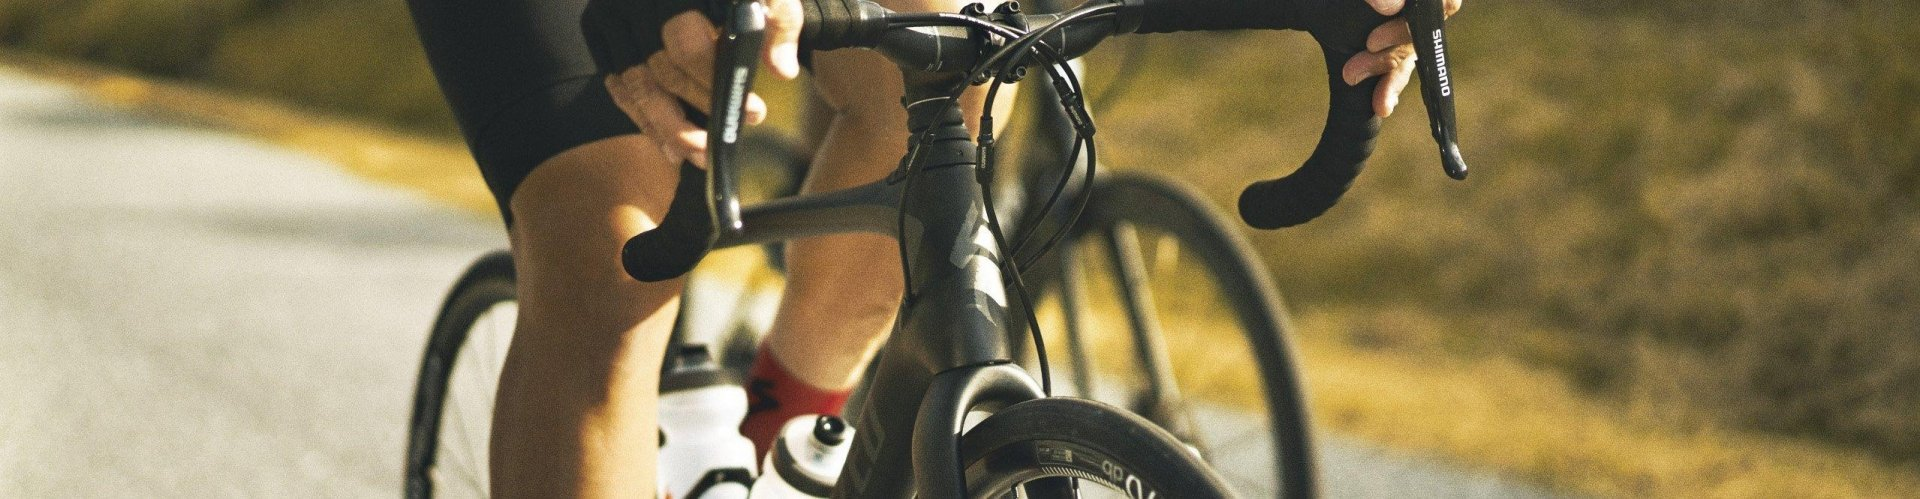 SPECIALIZED-Road_Banner-1920-500.jpg